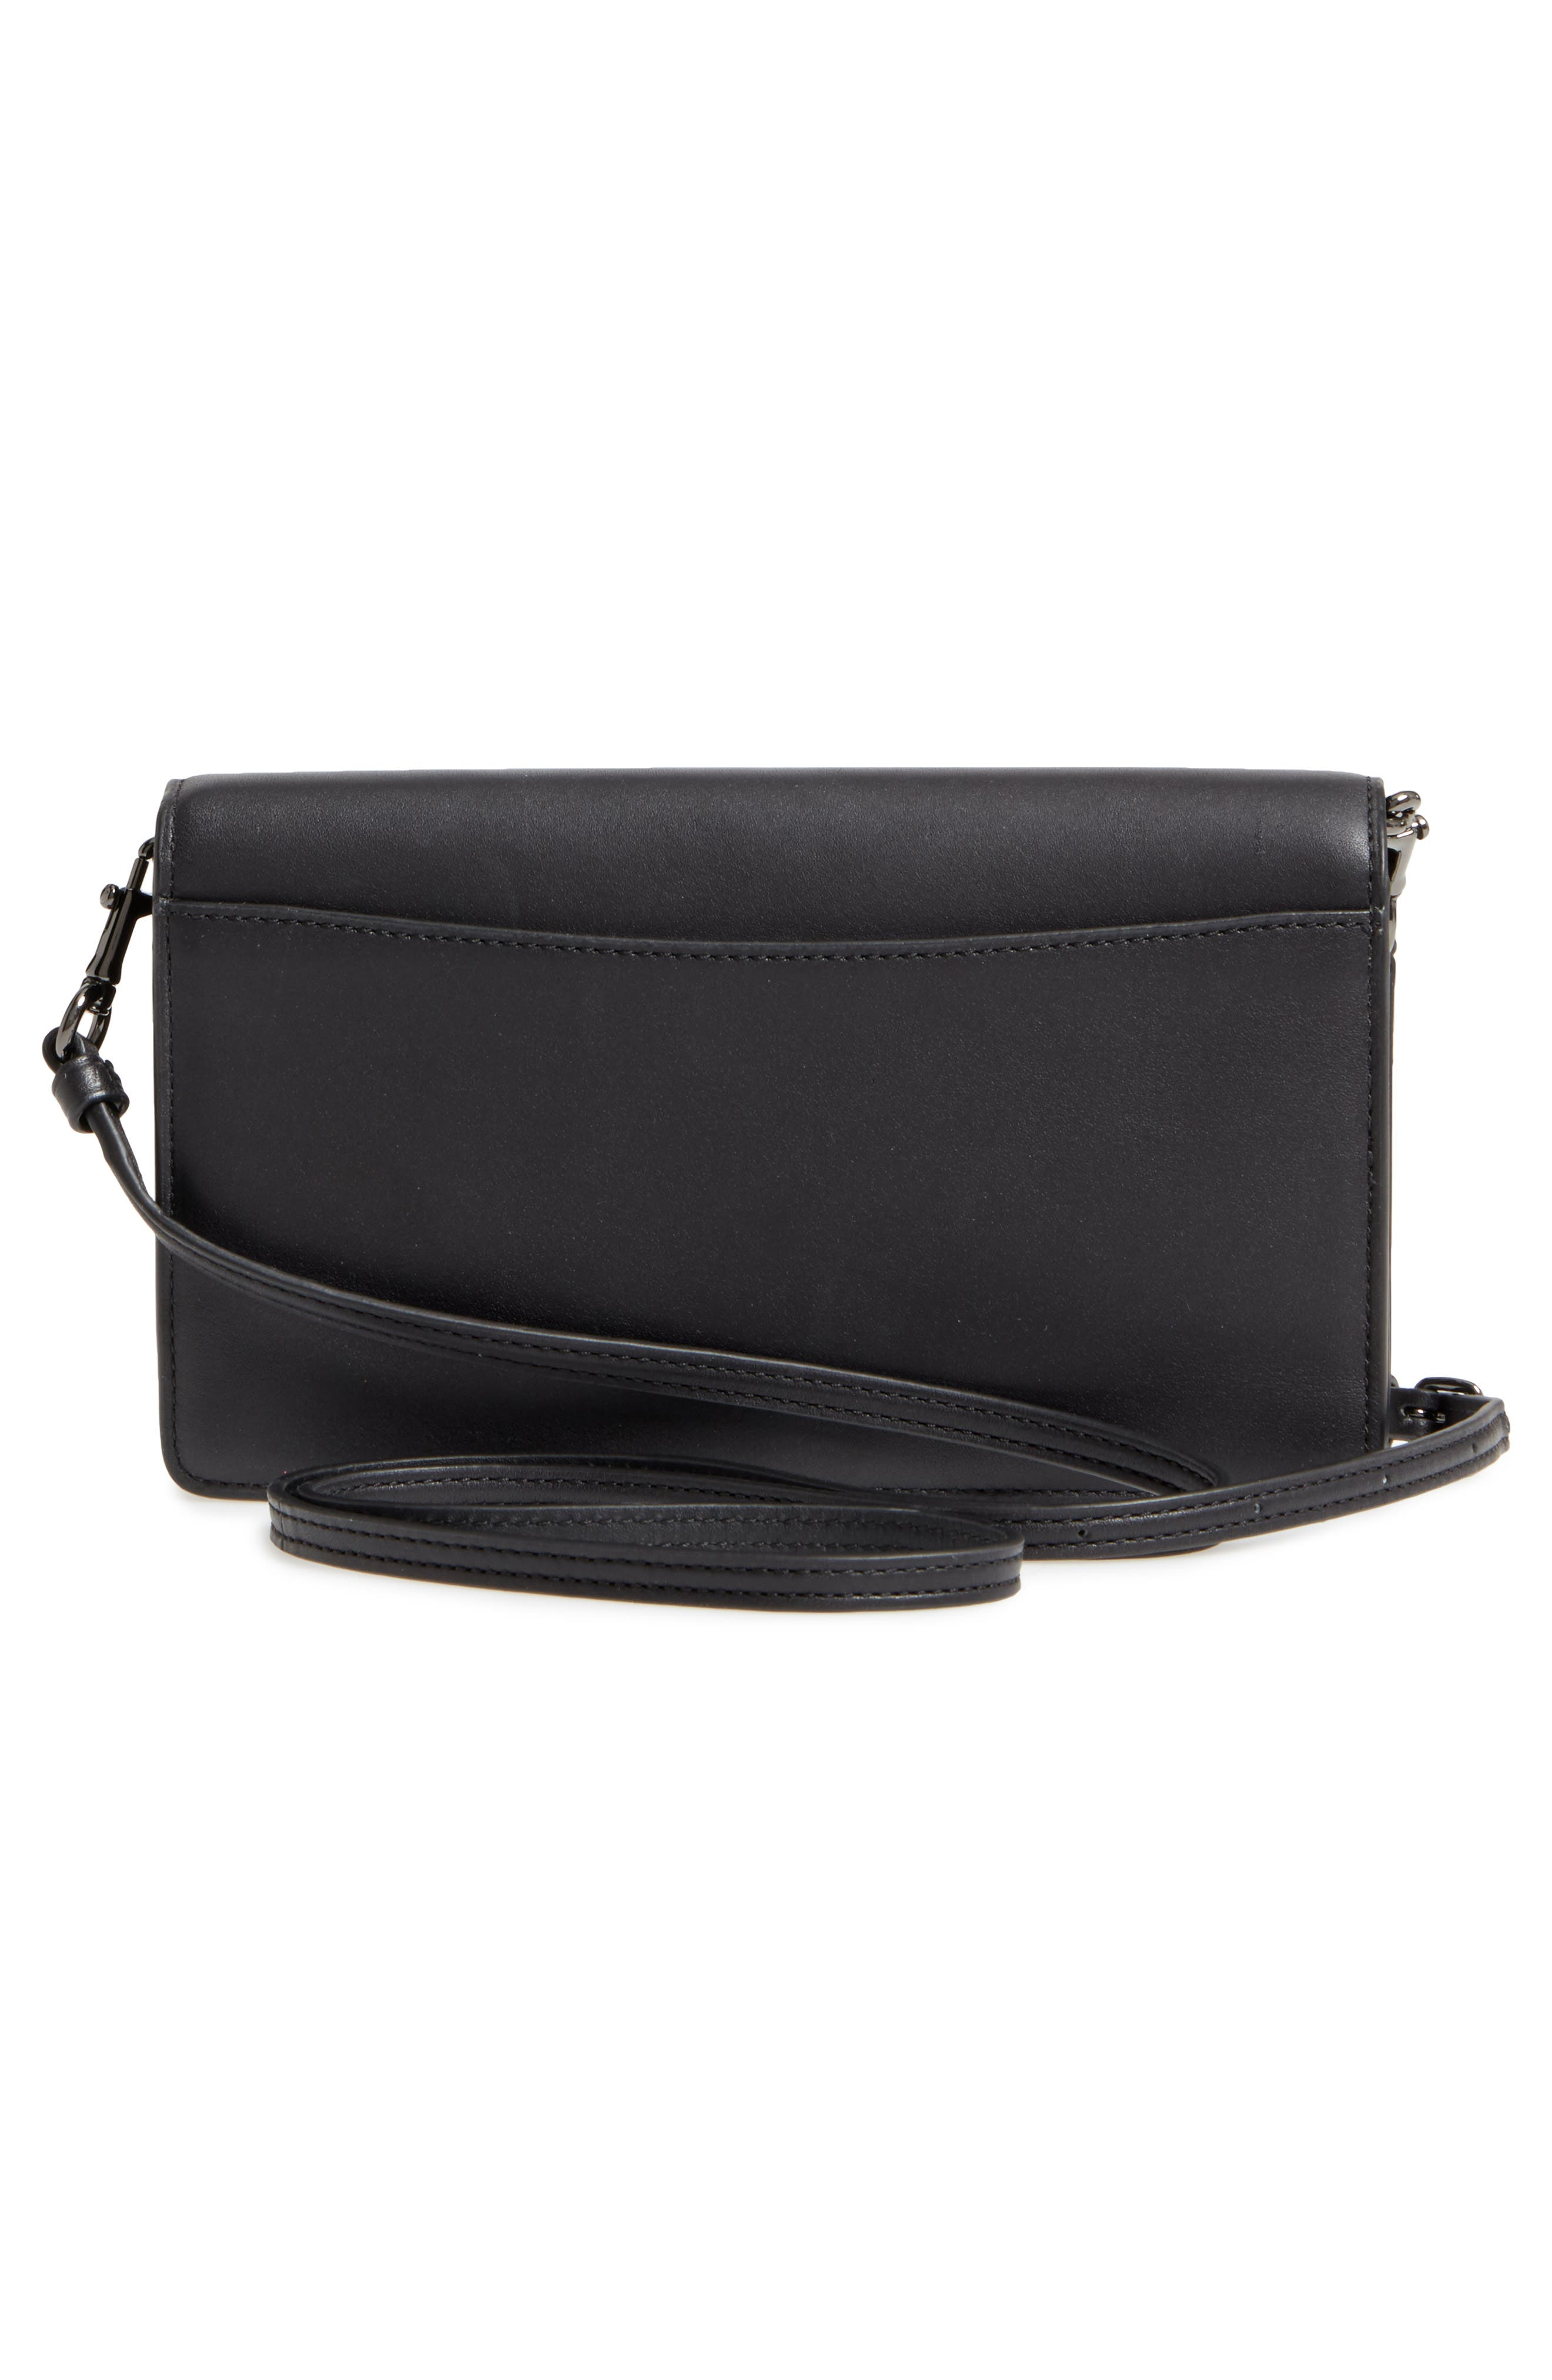 Calfskin Leather Foldover Convertible Clutch,                             Alternate thumbnail 3, color,                             009